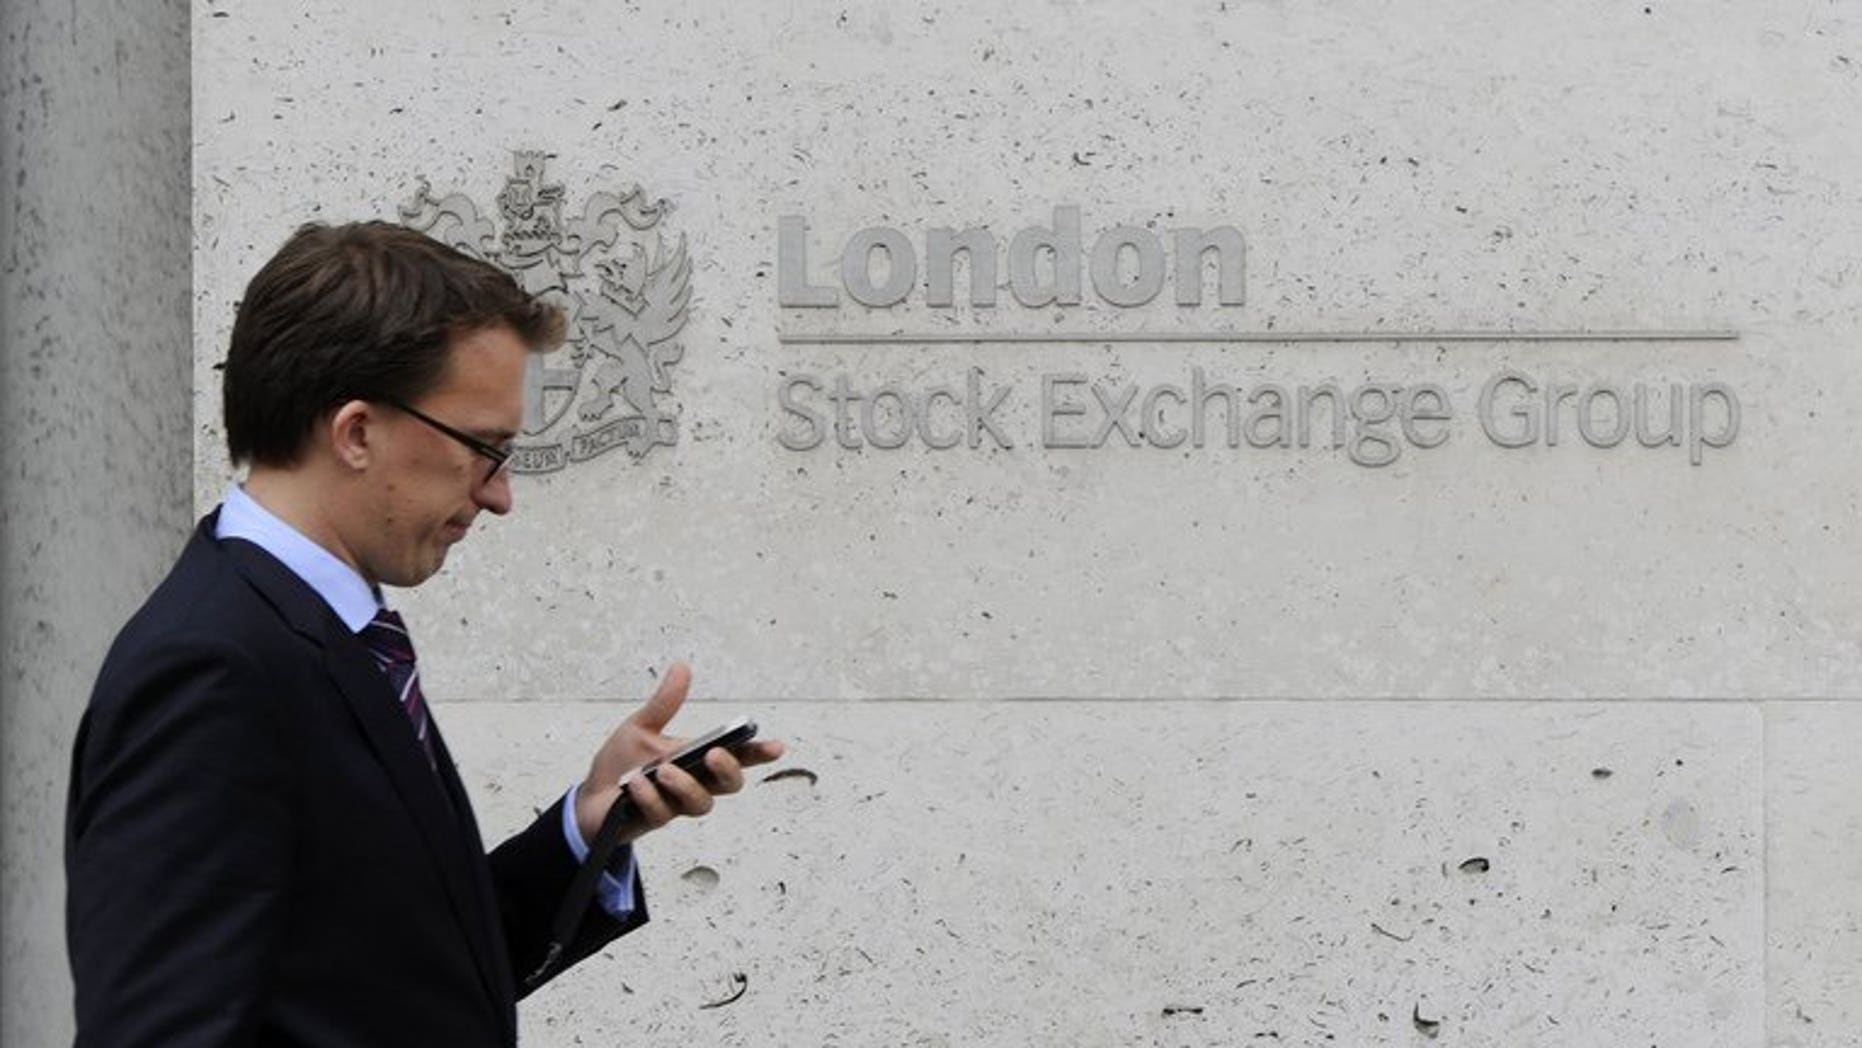 A man walks past the London Stock Exchange, in central London. London shares closed higher on Tuesday as investors hoped the two-day Federal Reserve Board meeting will not spark too sharp a reduction in the Fed's stimulus programme to shore up the United States economy, dealers said.